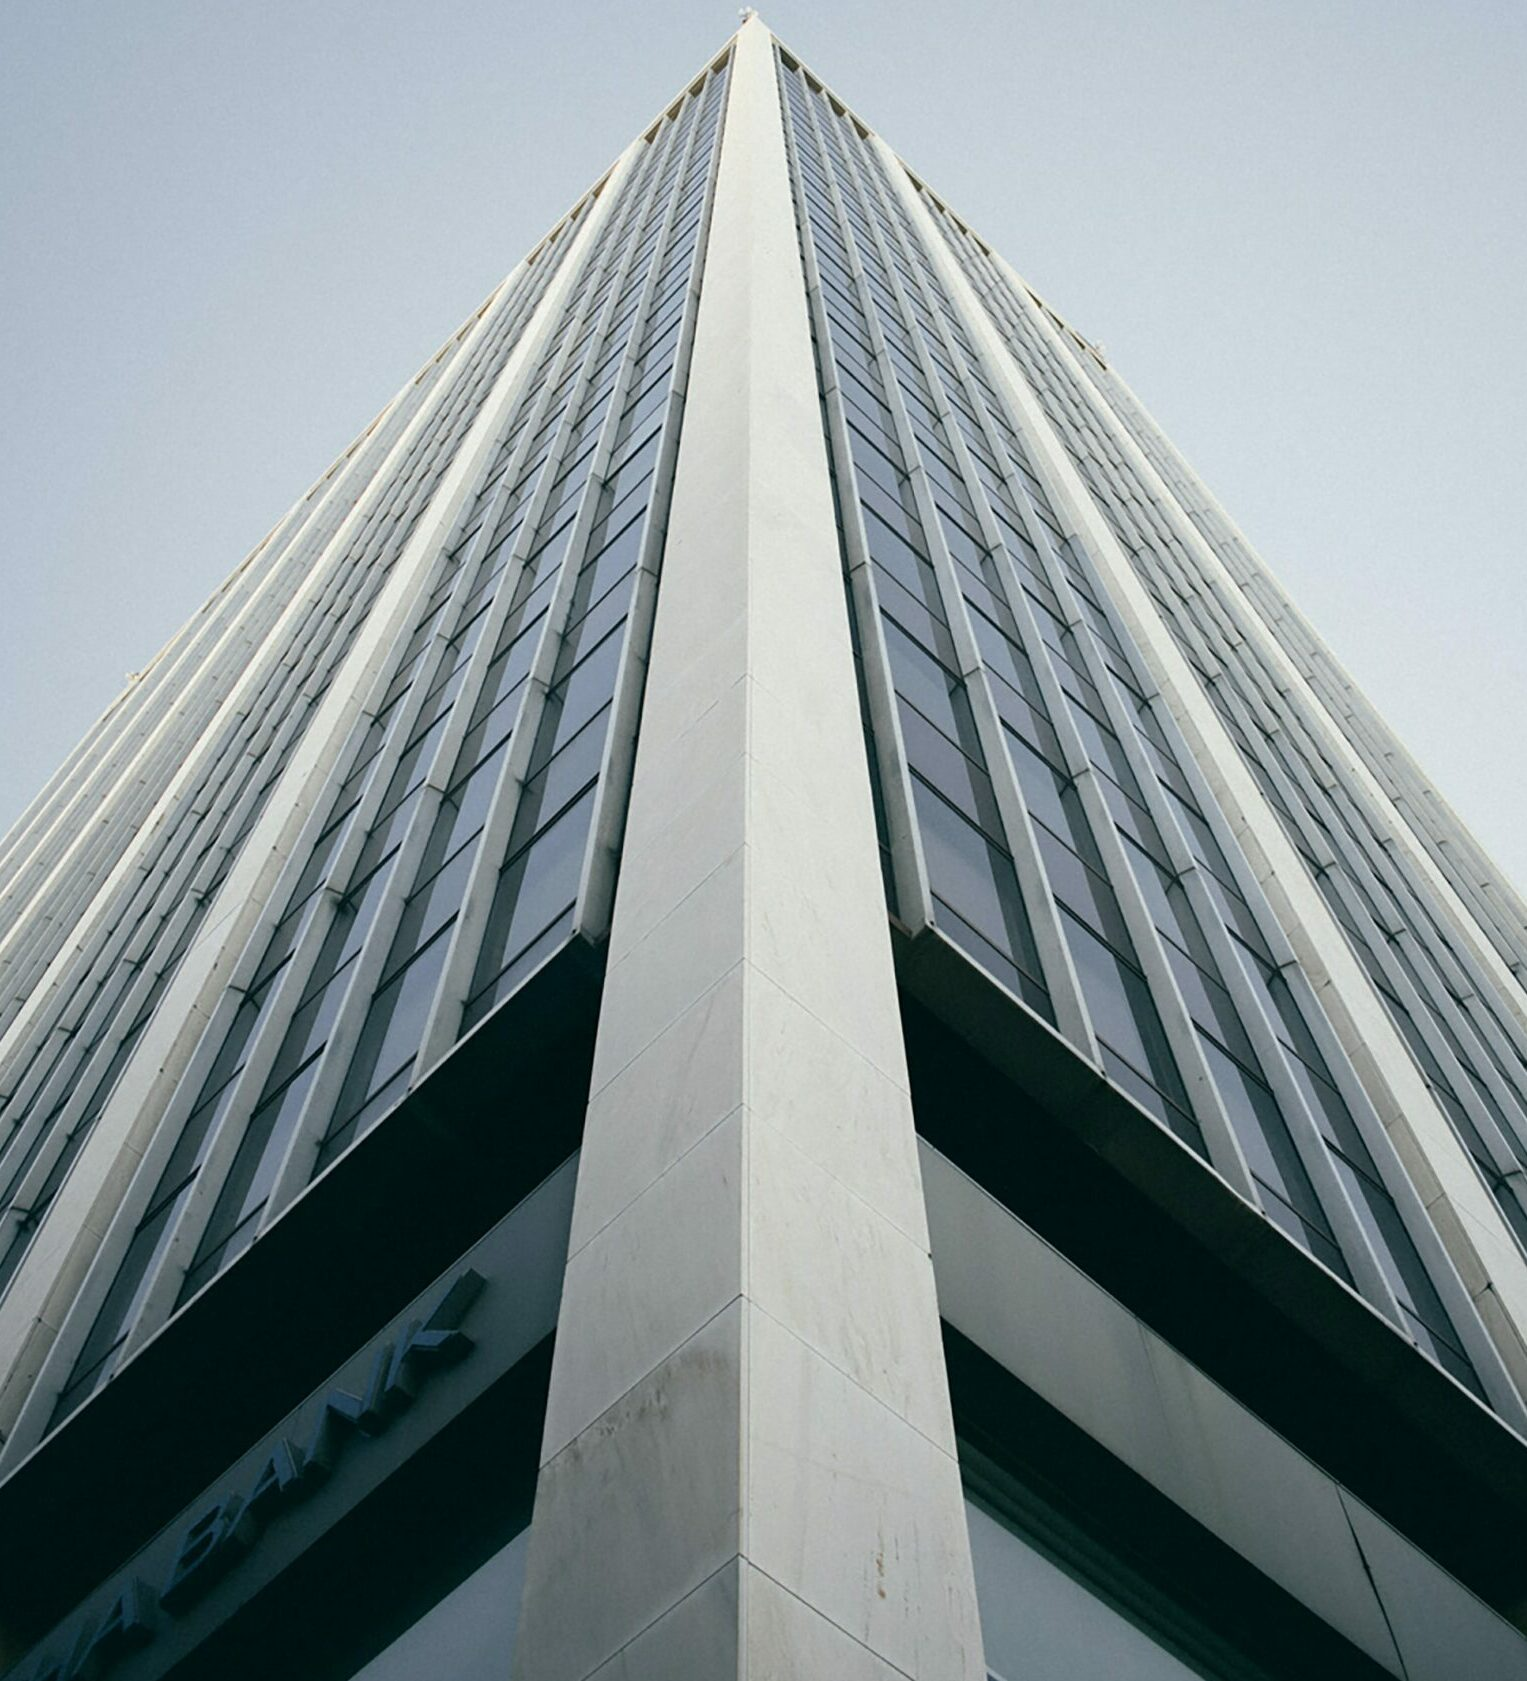 Athens Tower: The story behind the iconic building